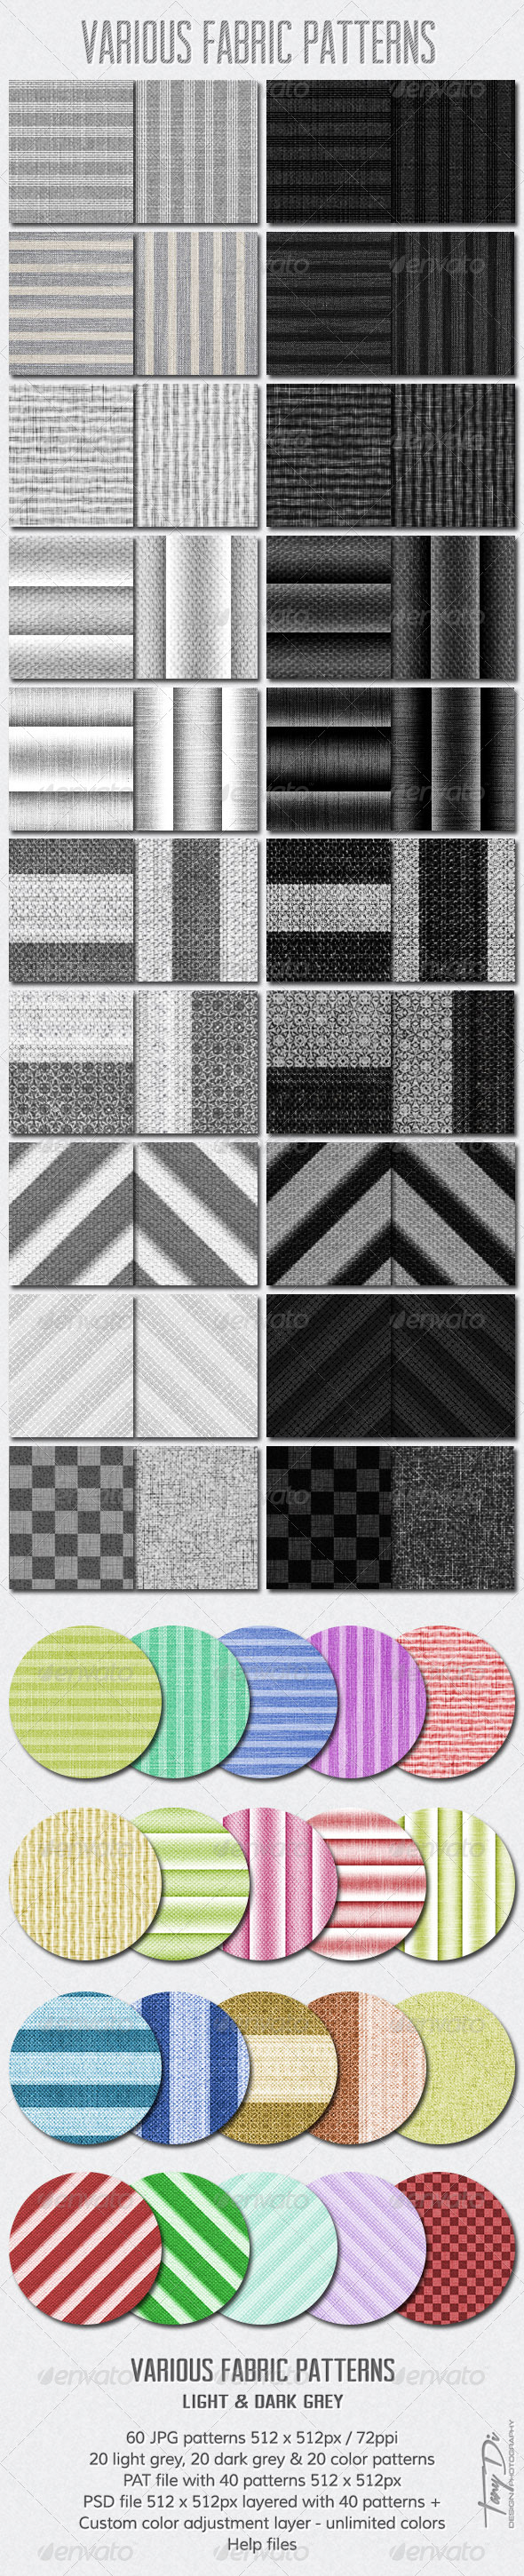 Various Fabric Patterns - Miscellaneous Textures / Fills / Patterns